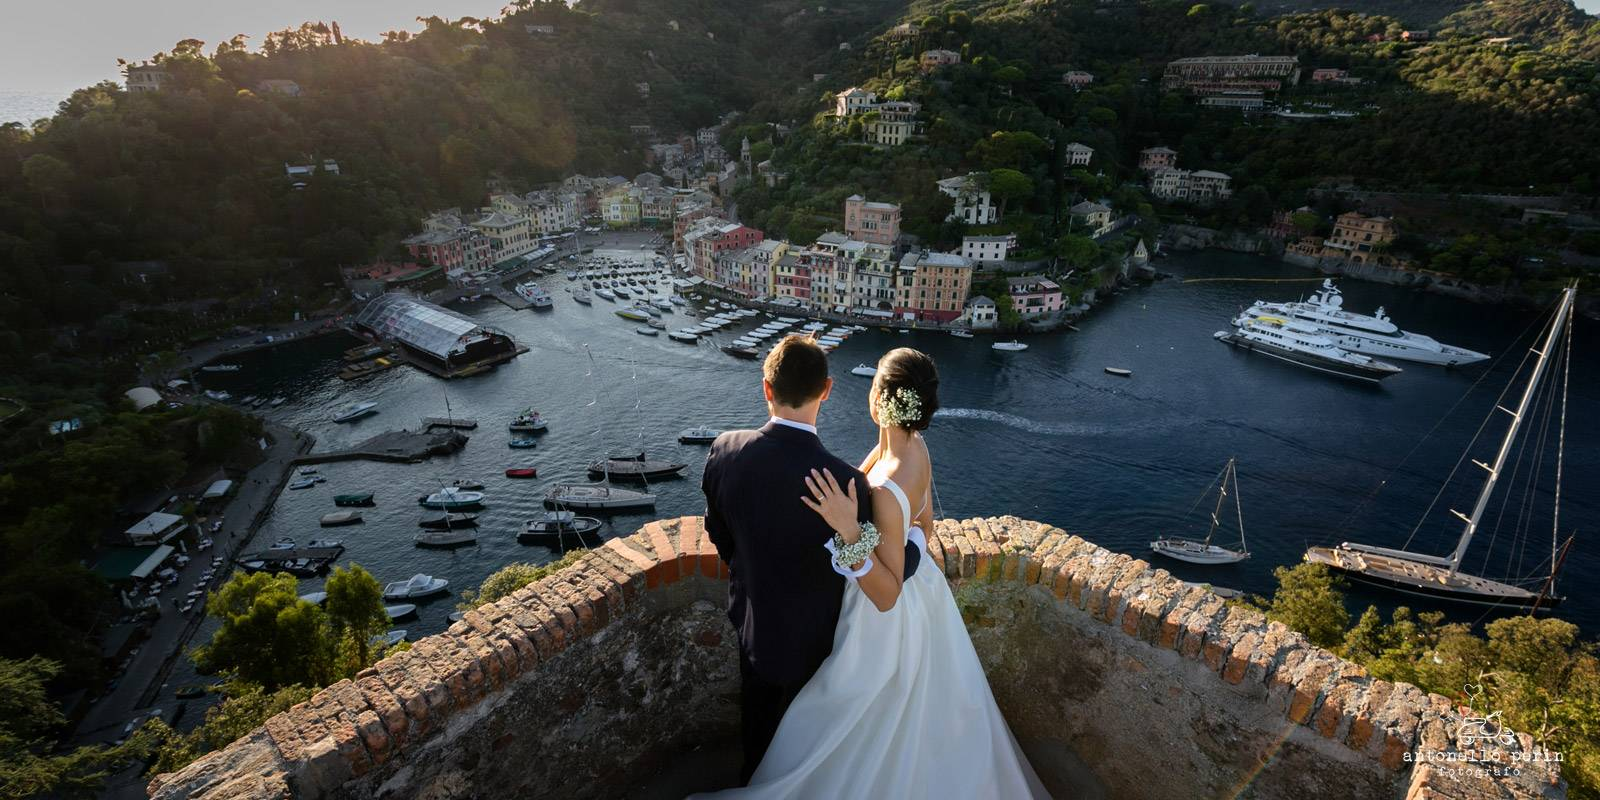 WEDDING PHOTOGRAPHER LAKE GARDA SIRMIONE,BRESCIA,VERONA,MANTOVA